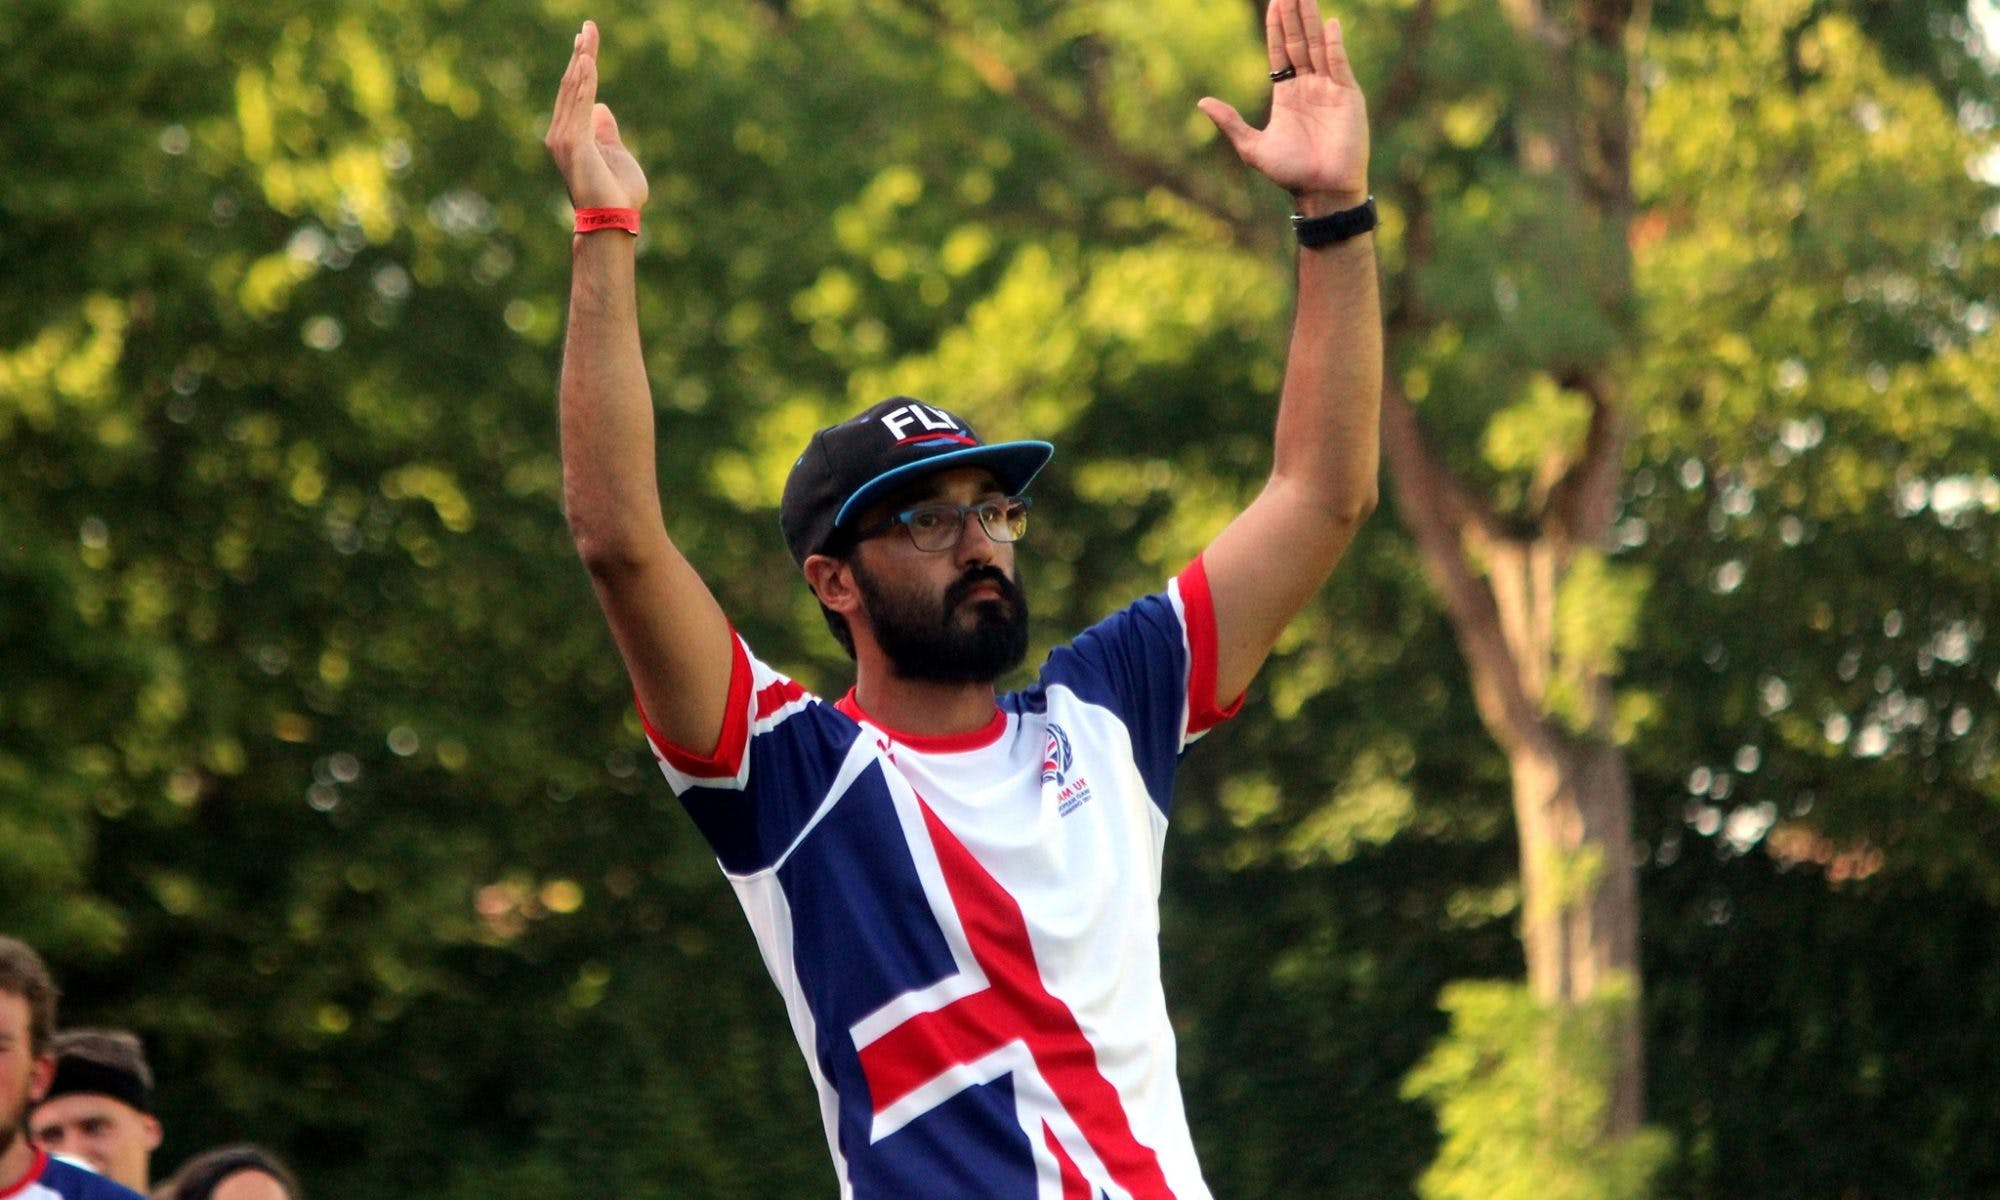 James Thanangadan stands wearing a Team UK Kit with his arms raised to indicate a goal